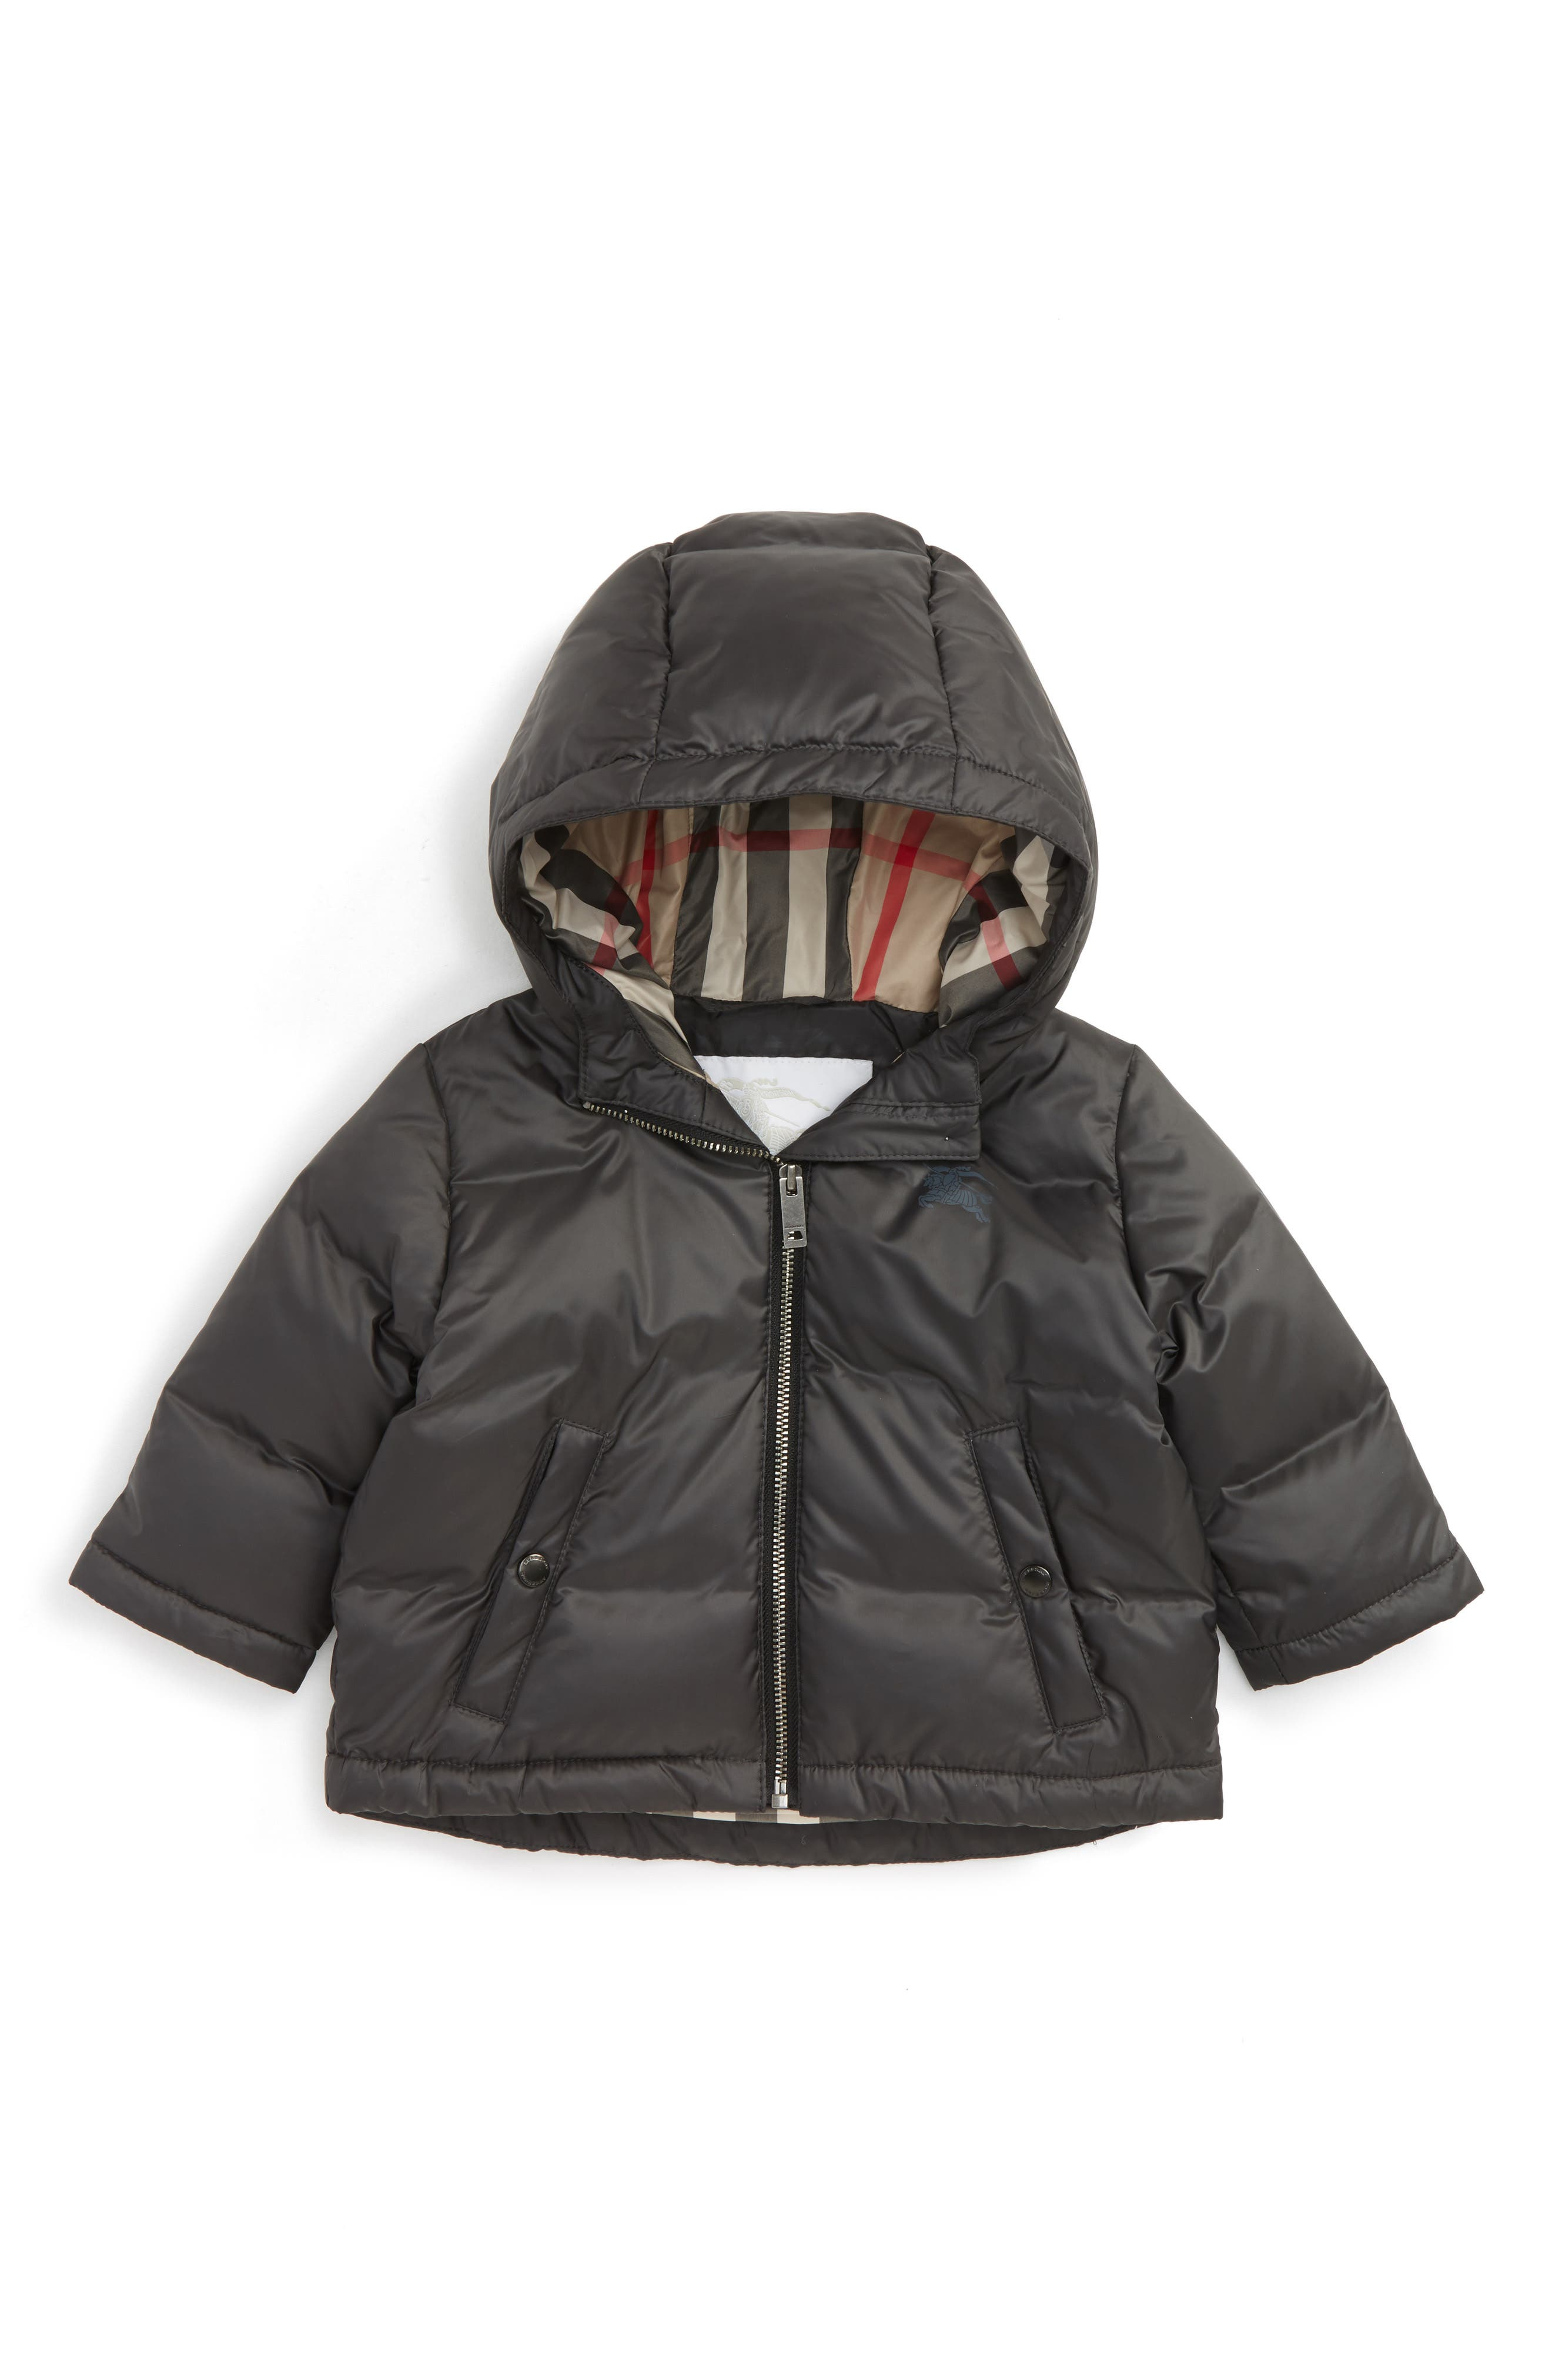 Alternate Image 1 Selected - Burberry Rio Hooded Down Puffer Jacket (Baby)